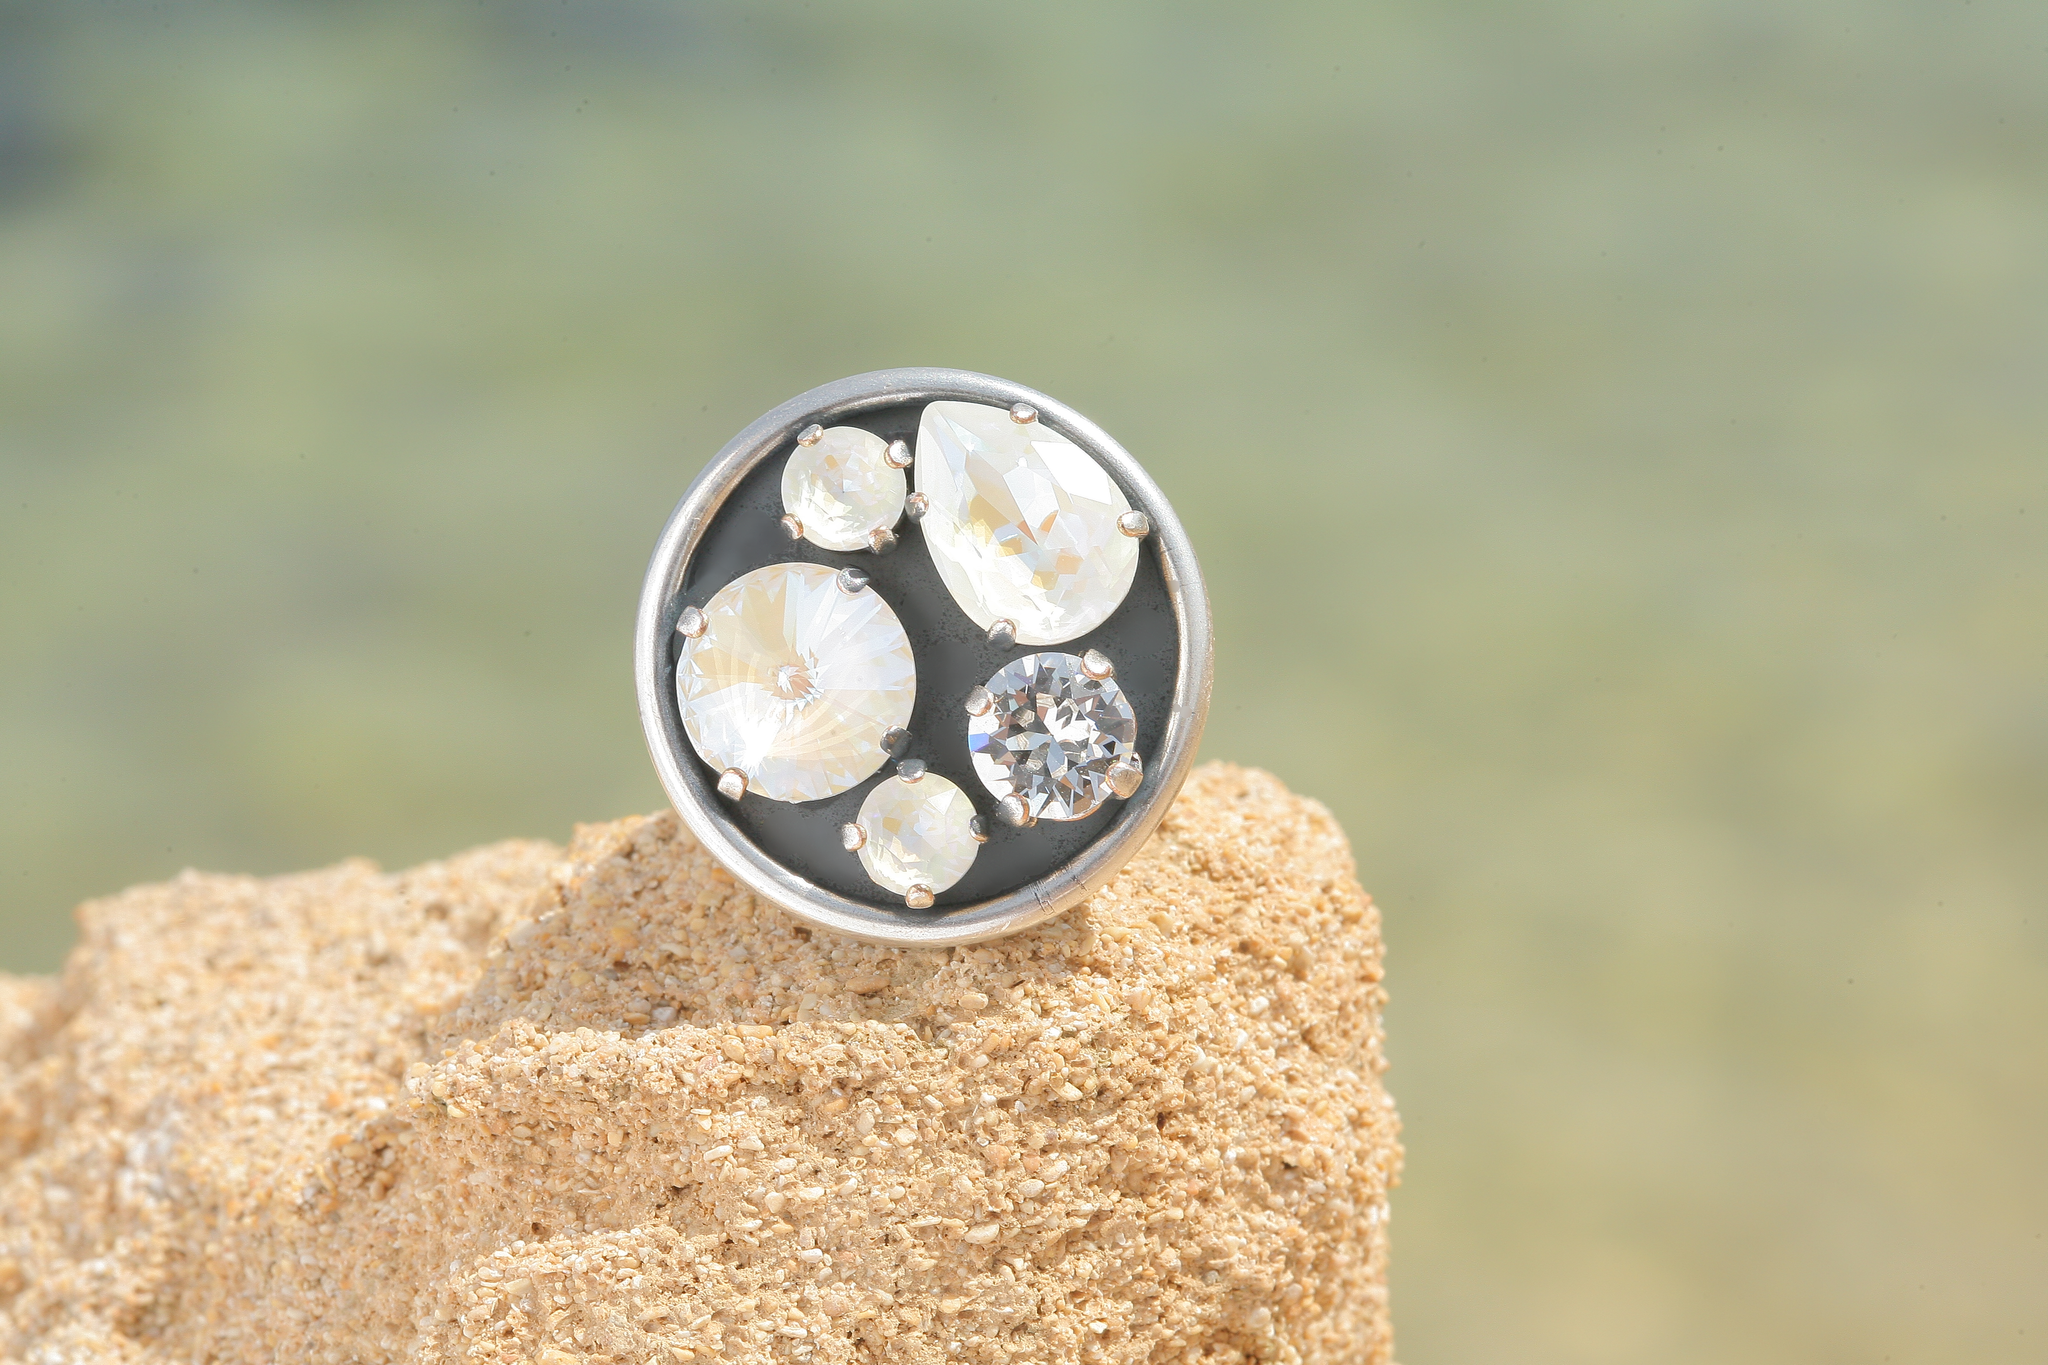 artjany Ring mit crystals im grey deLite mix